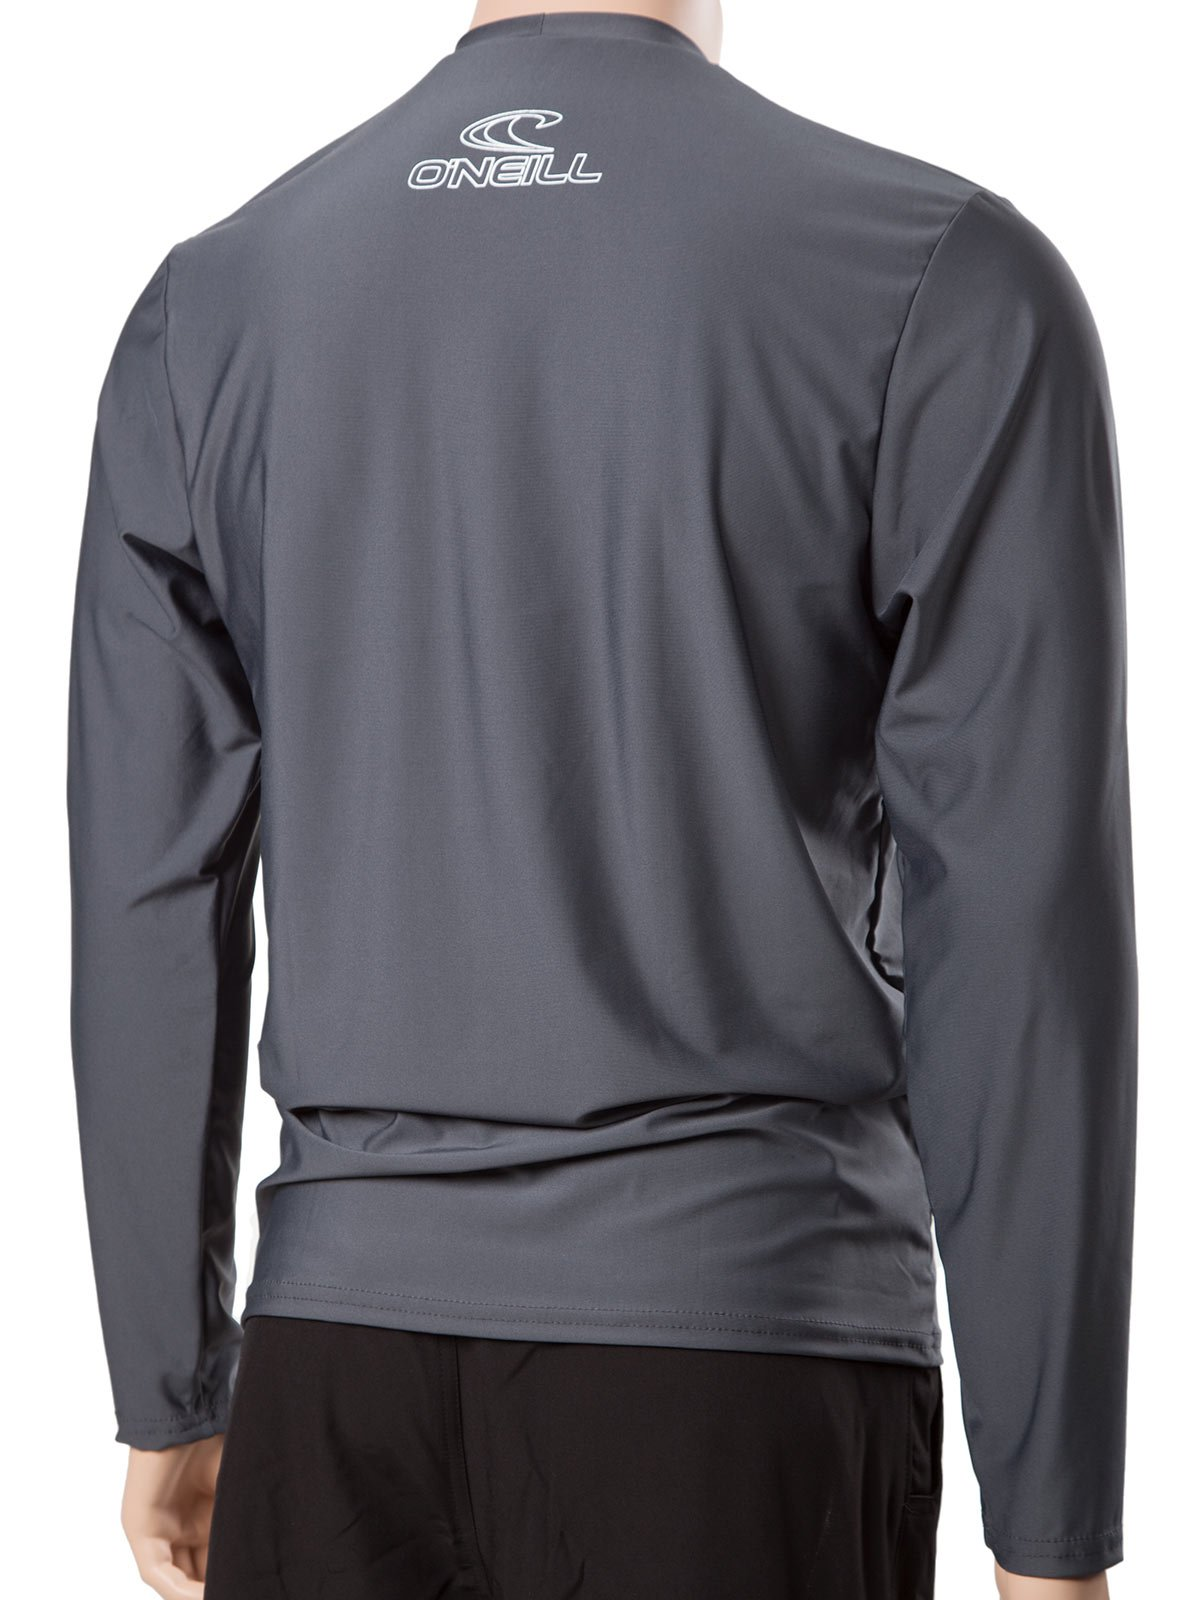 O'Neill Men's Basic Skins Longsleeve Rash Tee M Graphite (4339IS) by O'Neill Wetsuits (Image #4)